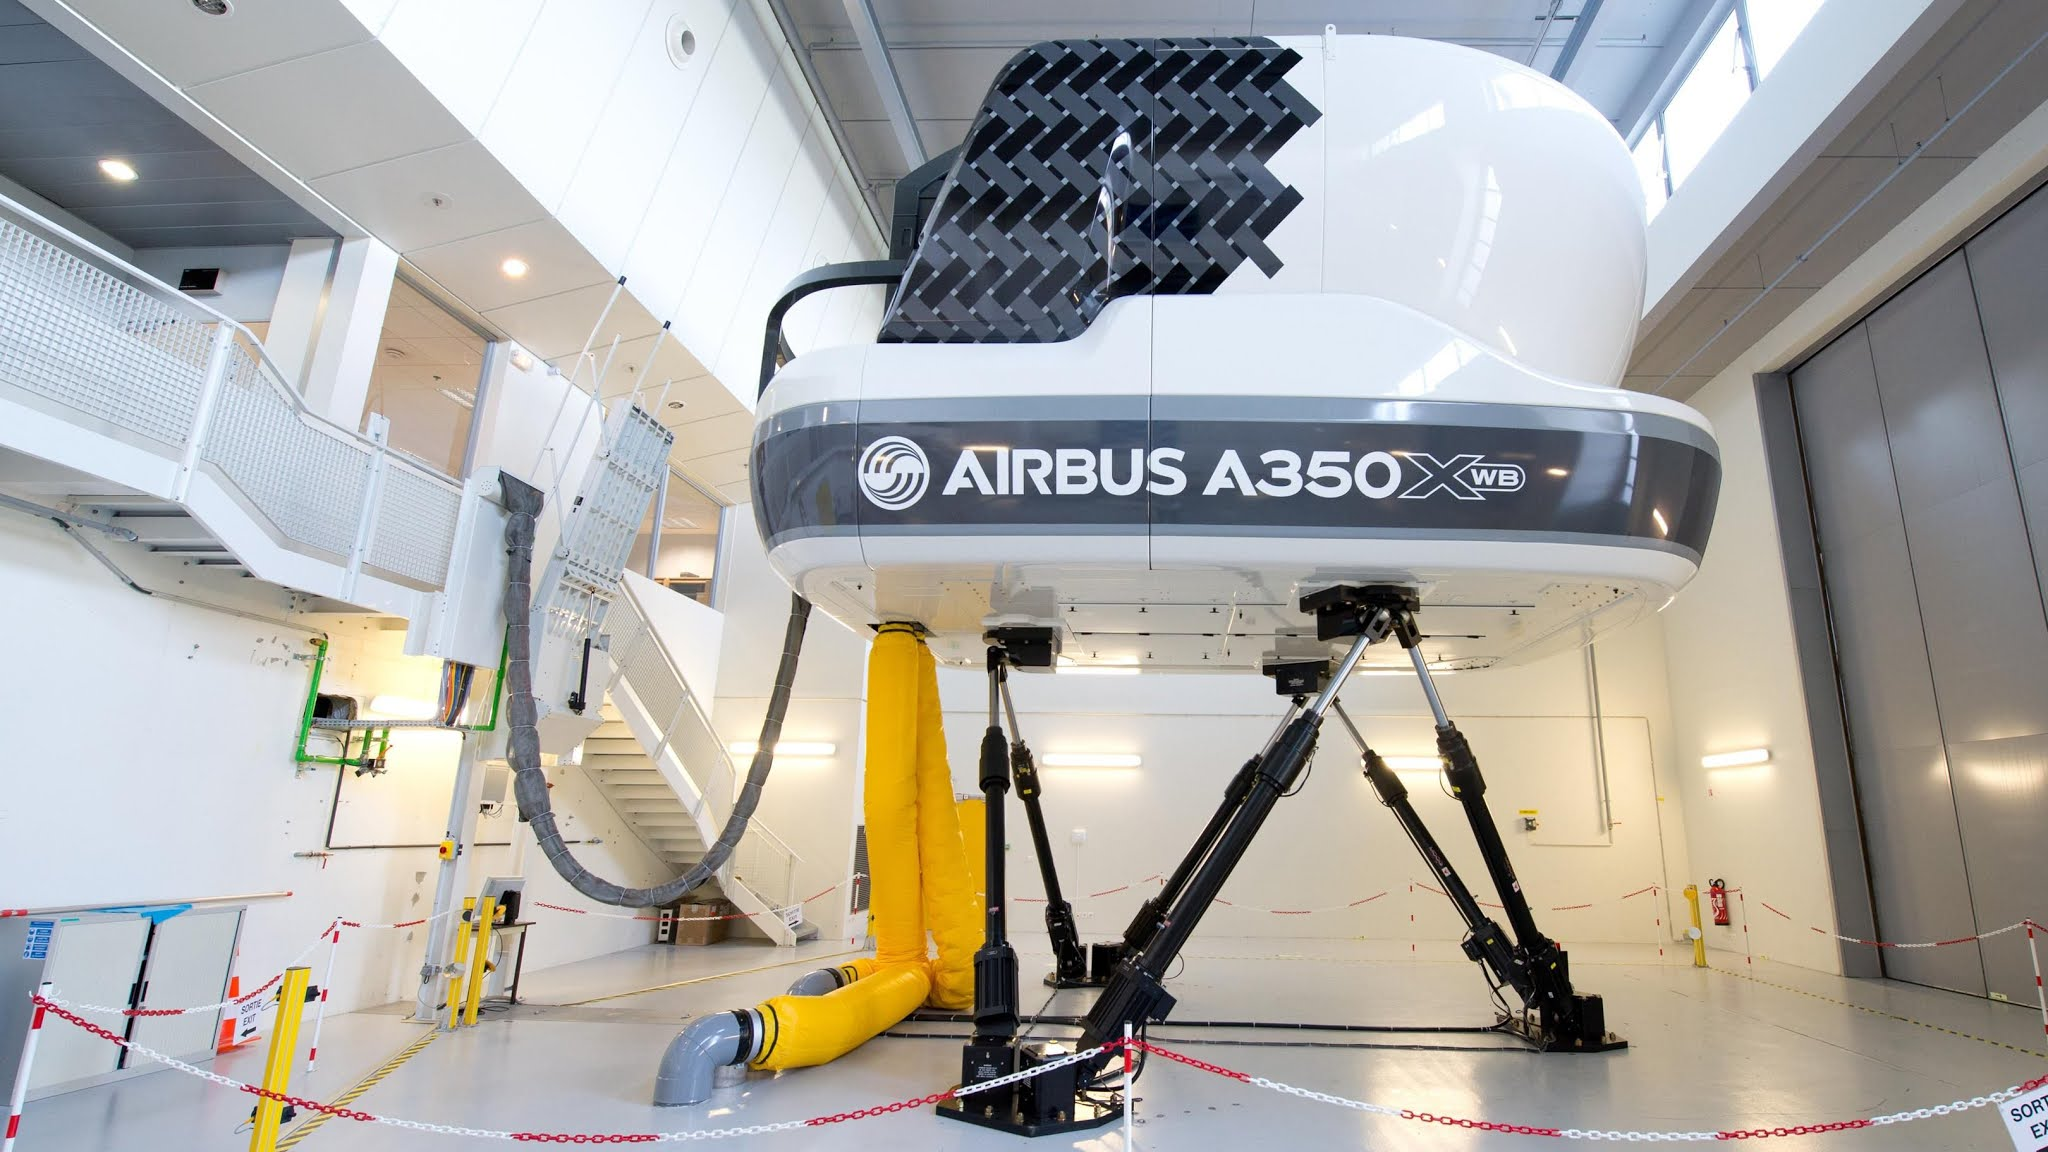 Airbus - Full Flight Simulator - Airbus A350 XWB - 01